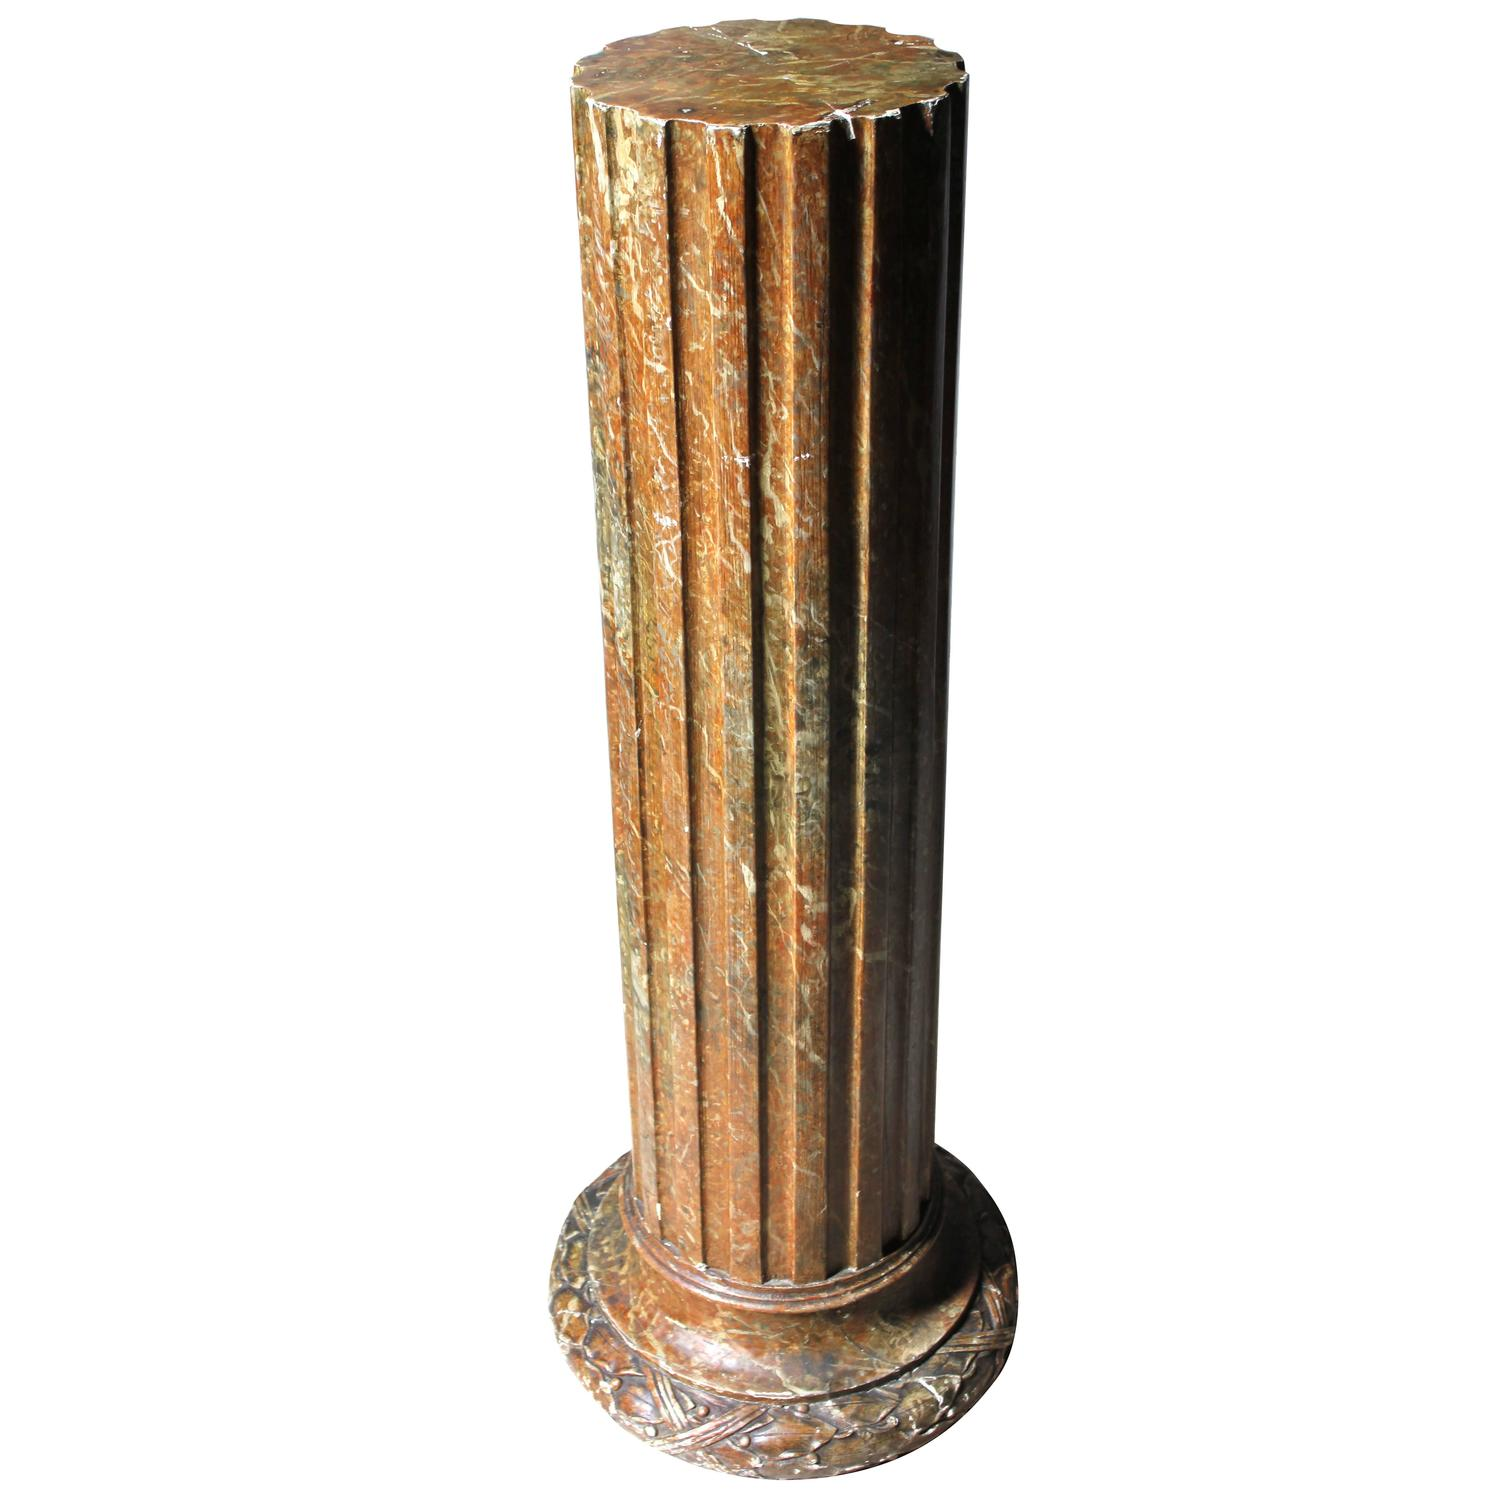 Decorative faux sienna marble plaster column circa 1890 for Decorative columns